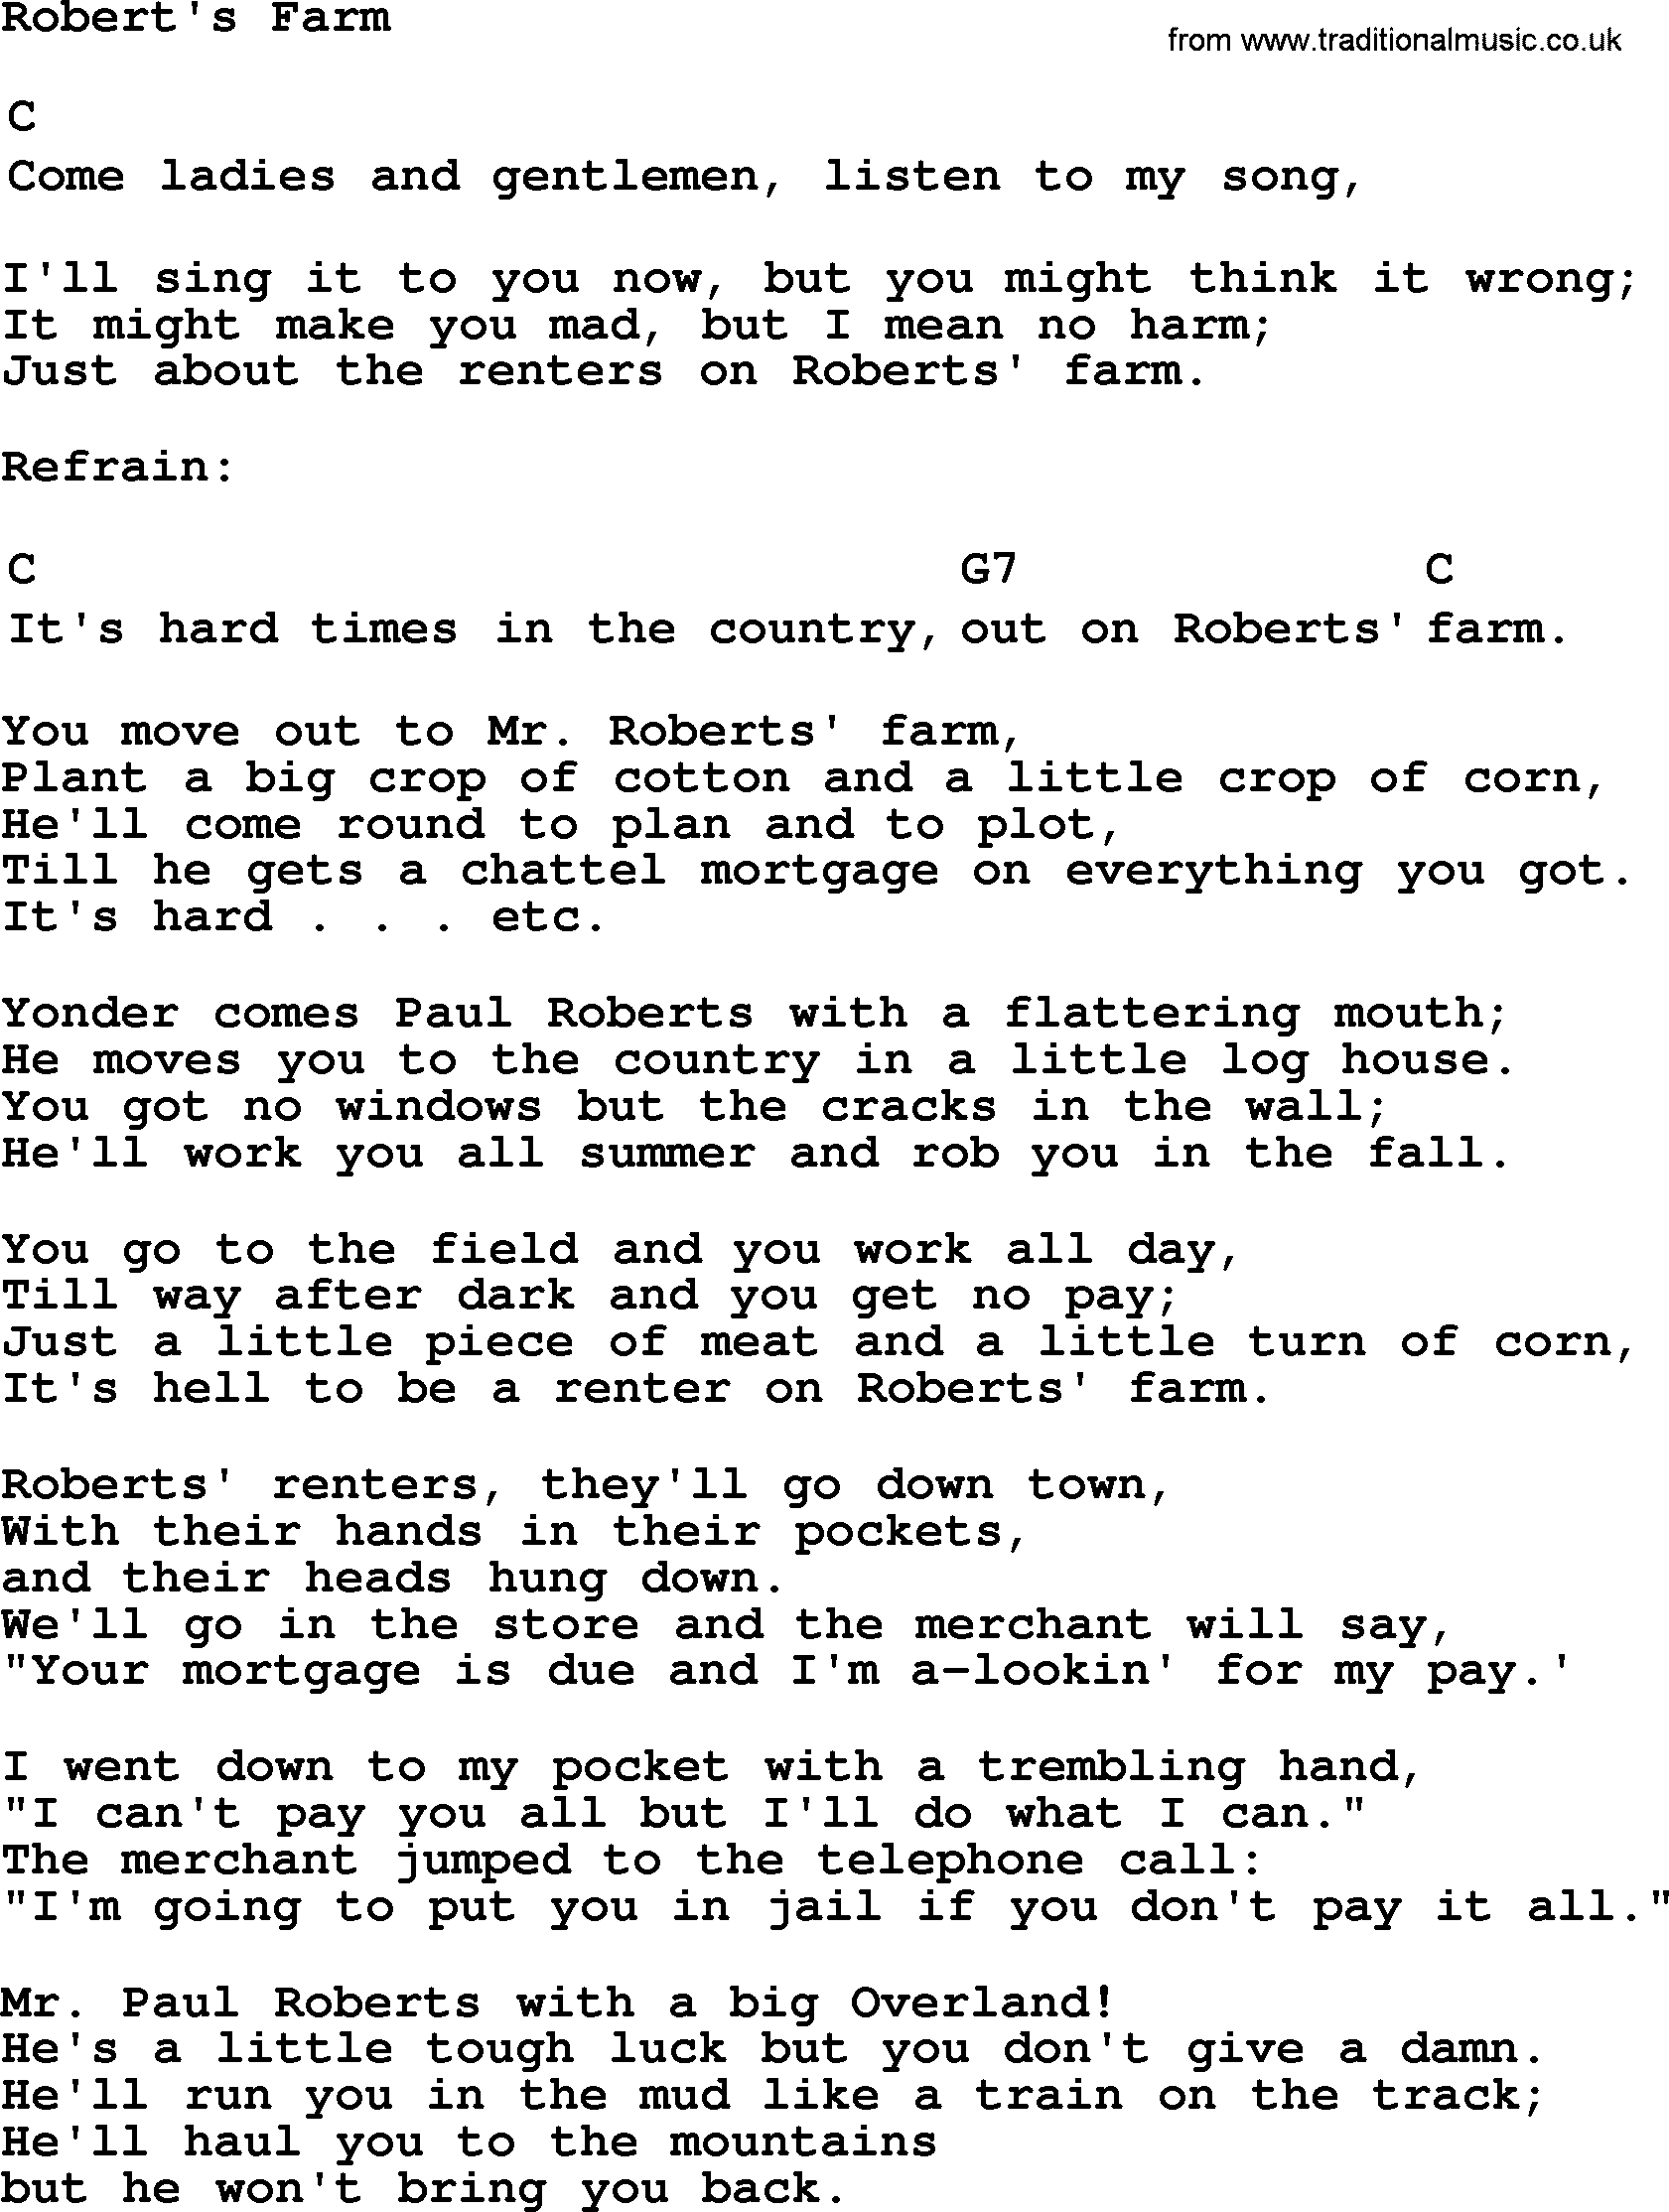 Top 1000 folk and old time songs collection roberts farm lyrics top 1000 most popular folk and old time songs roberts farm lyrics and hexwebz Choice Image